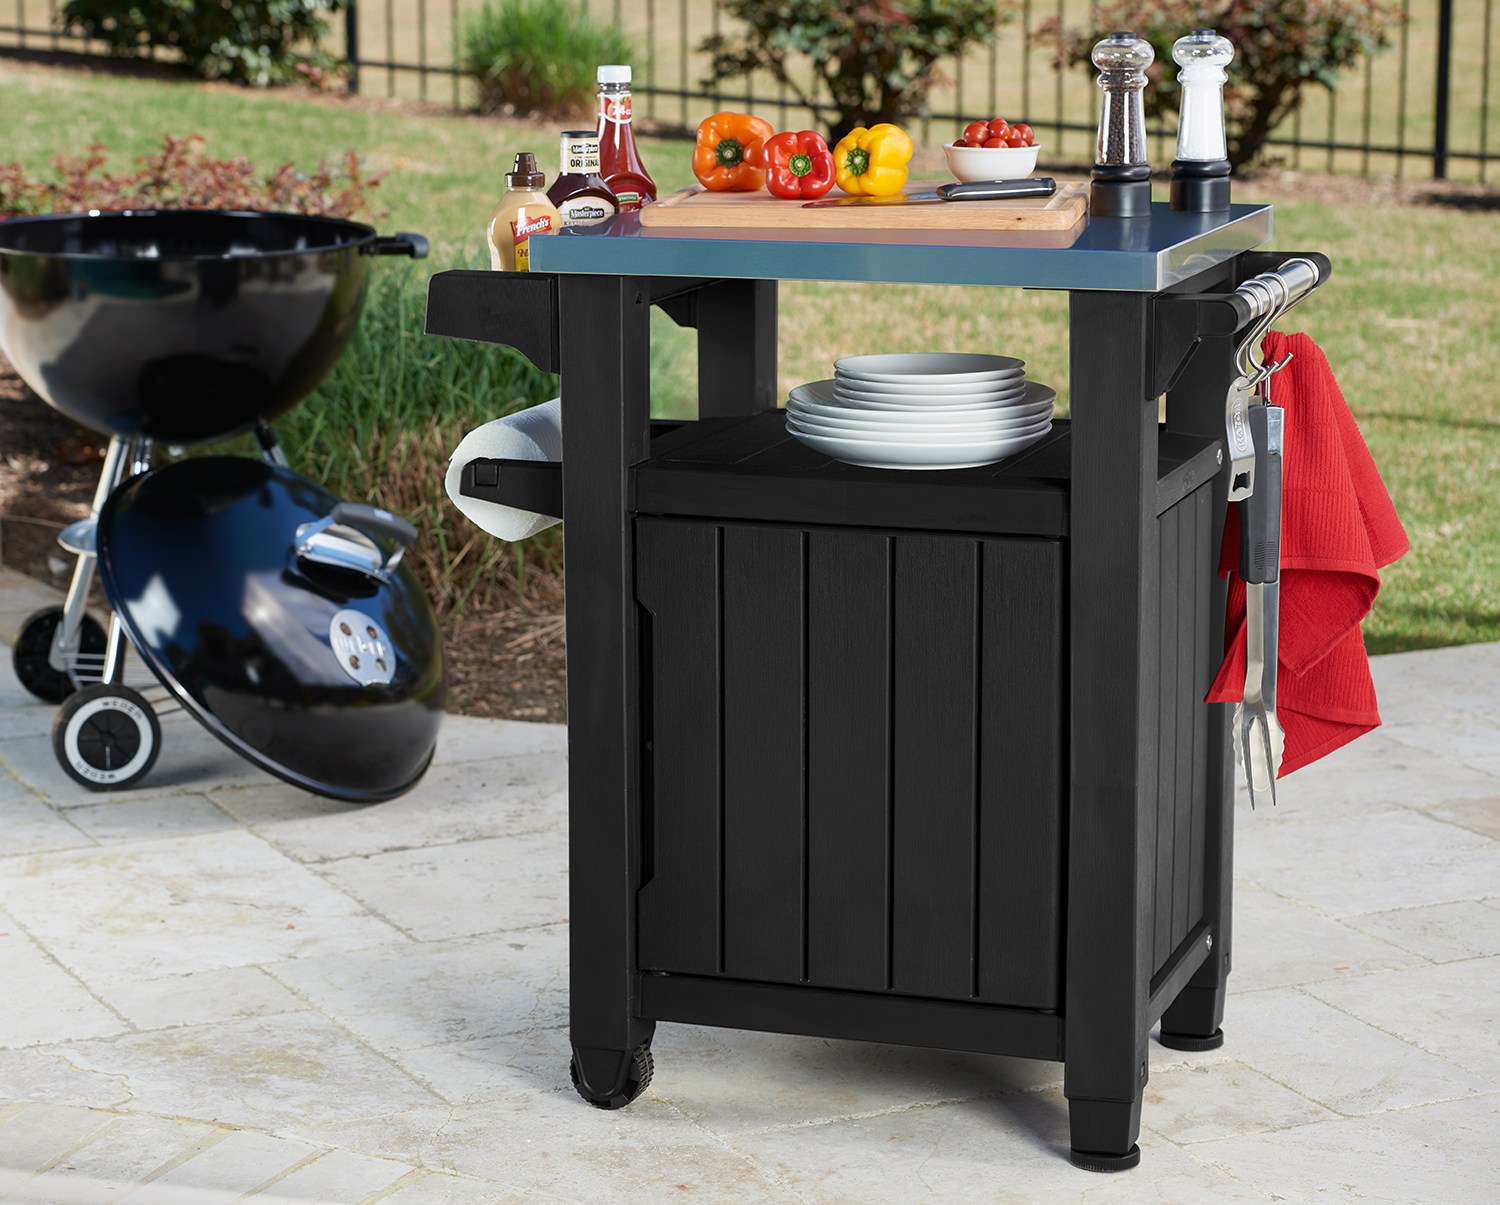 Keter Unity Resin Serving Station, All Weather Plastic And Metal Grill,  Storage And Prep Table, 40 Gal, Brown   Walmart.com